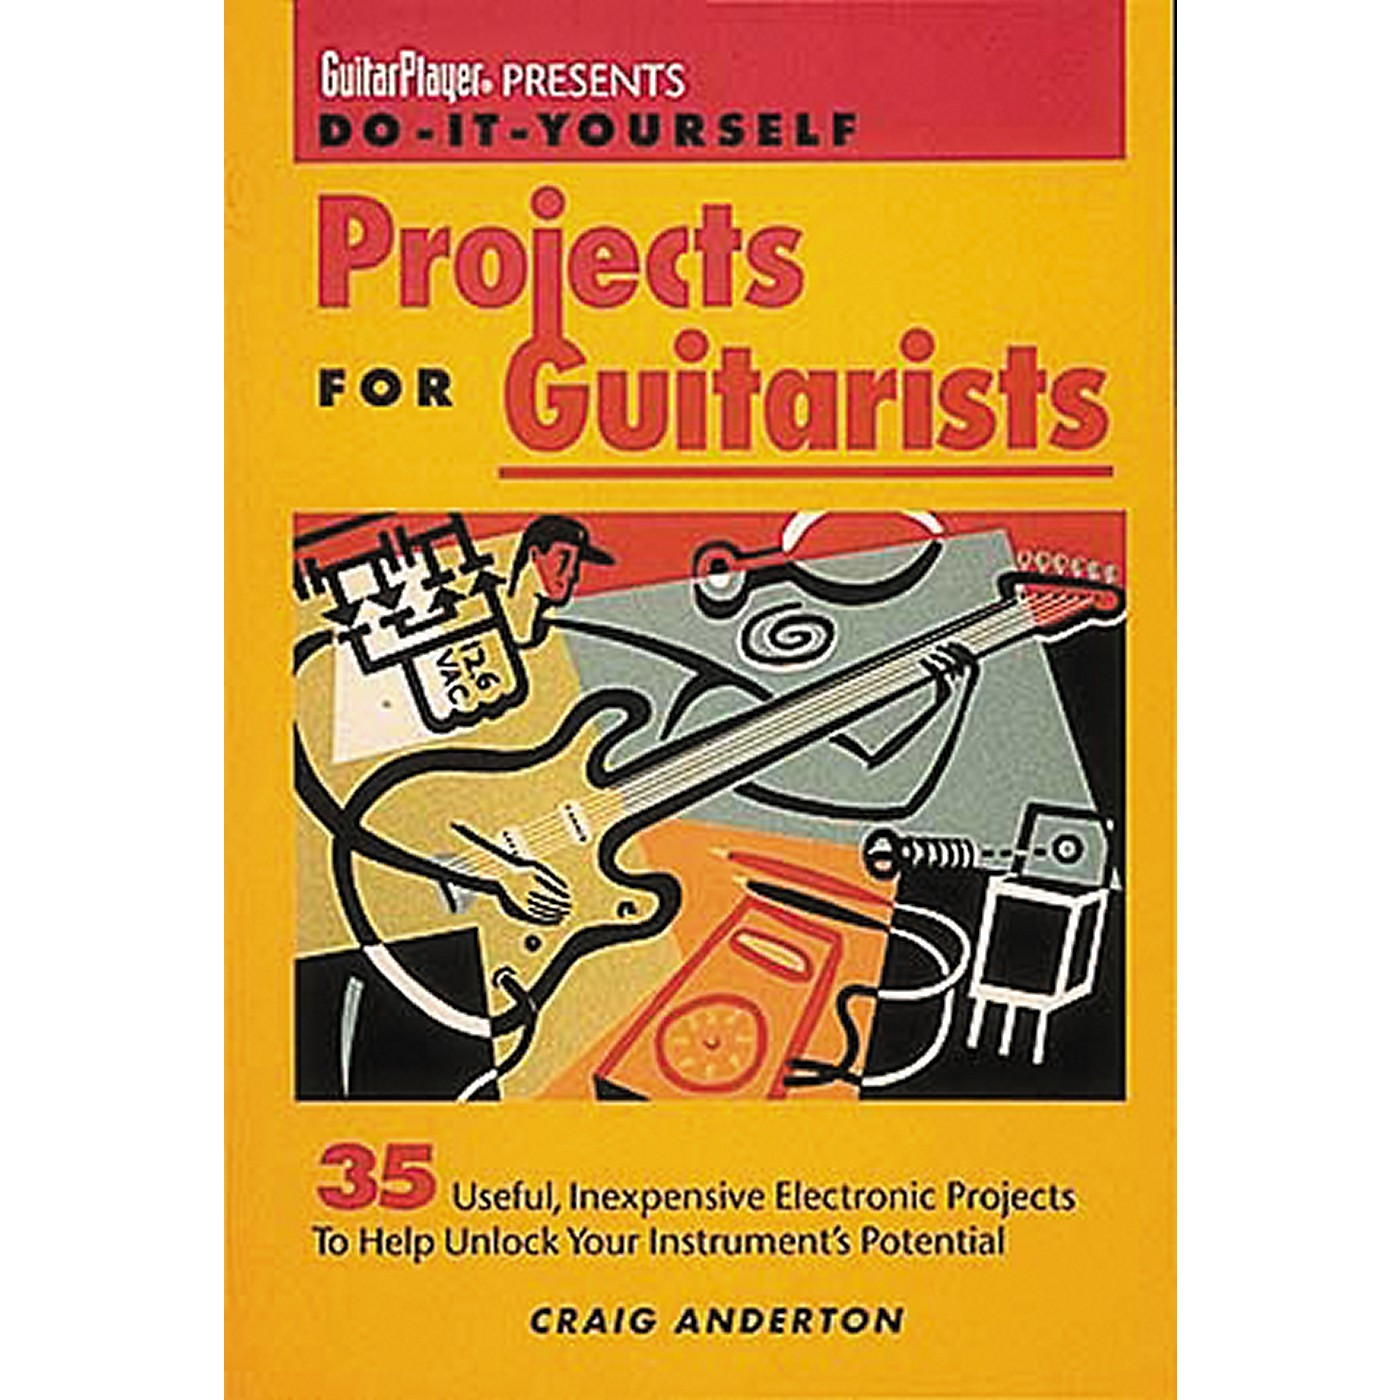 Hal Leonard Guitar Player Presents Do-It-Yourself Projects for Guitarists thumbnail